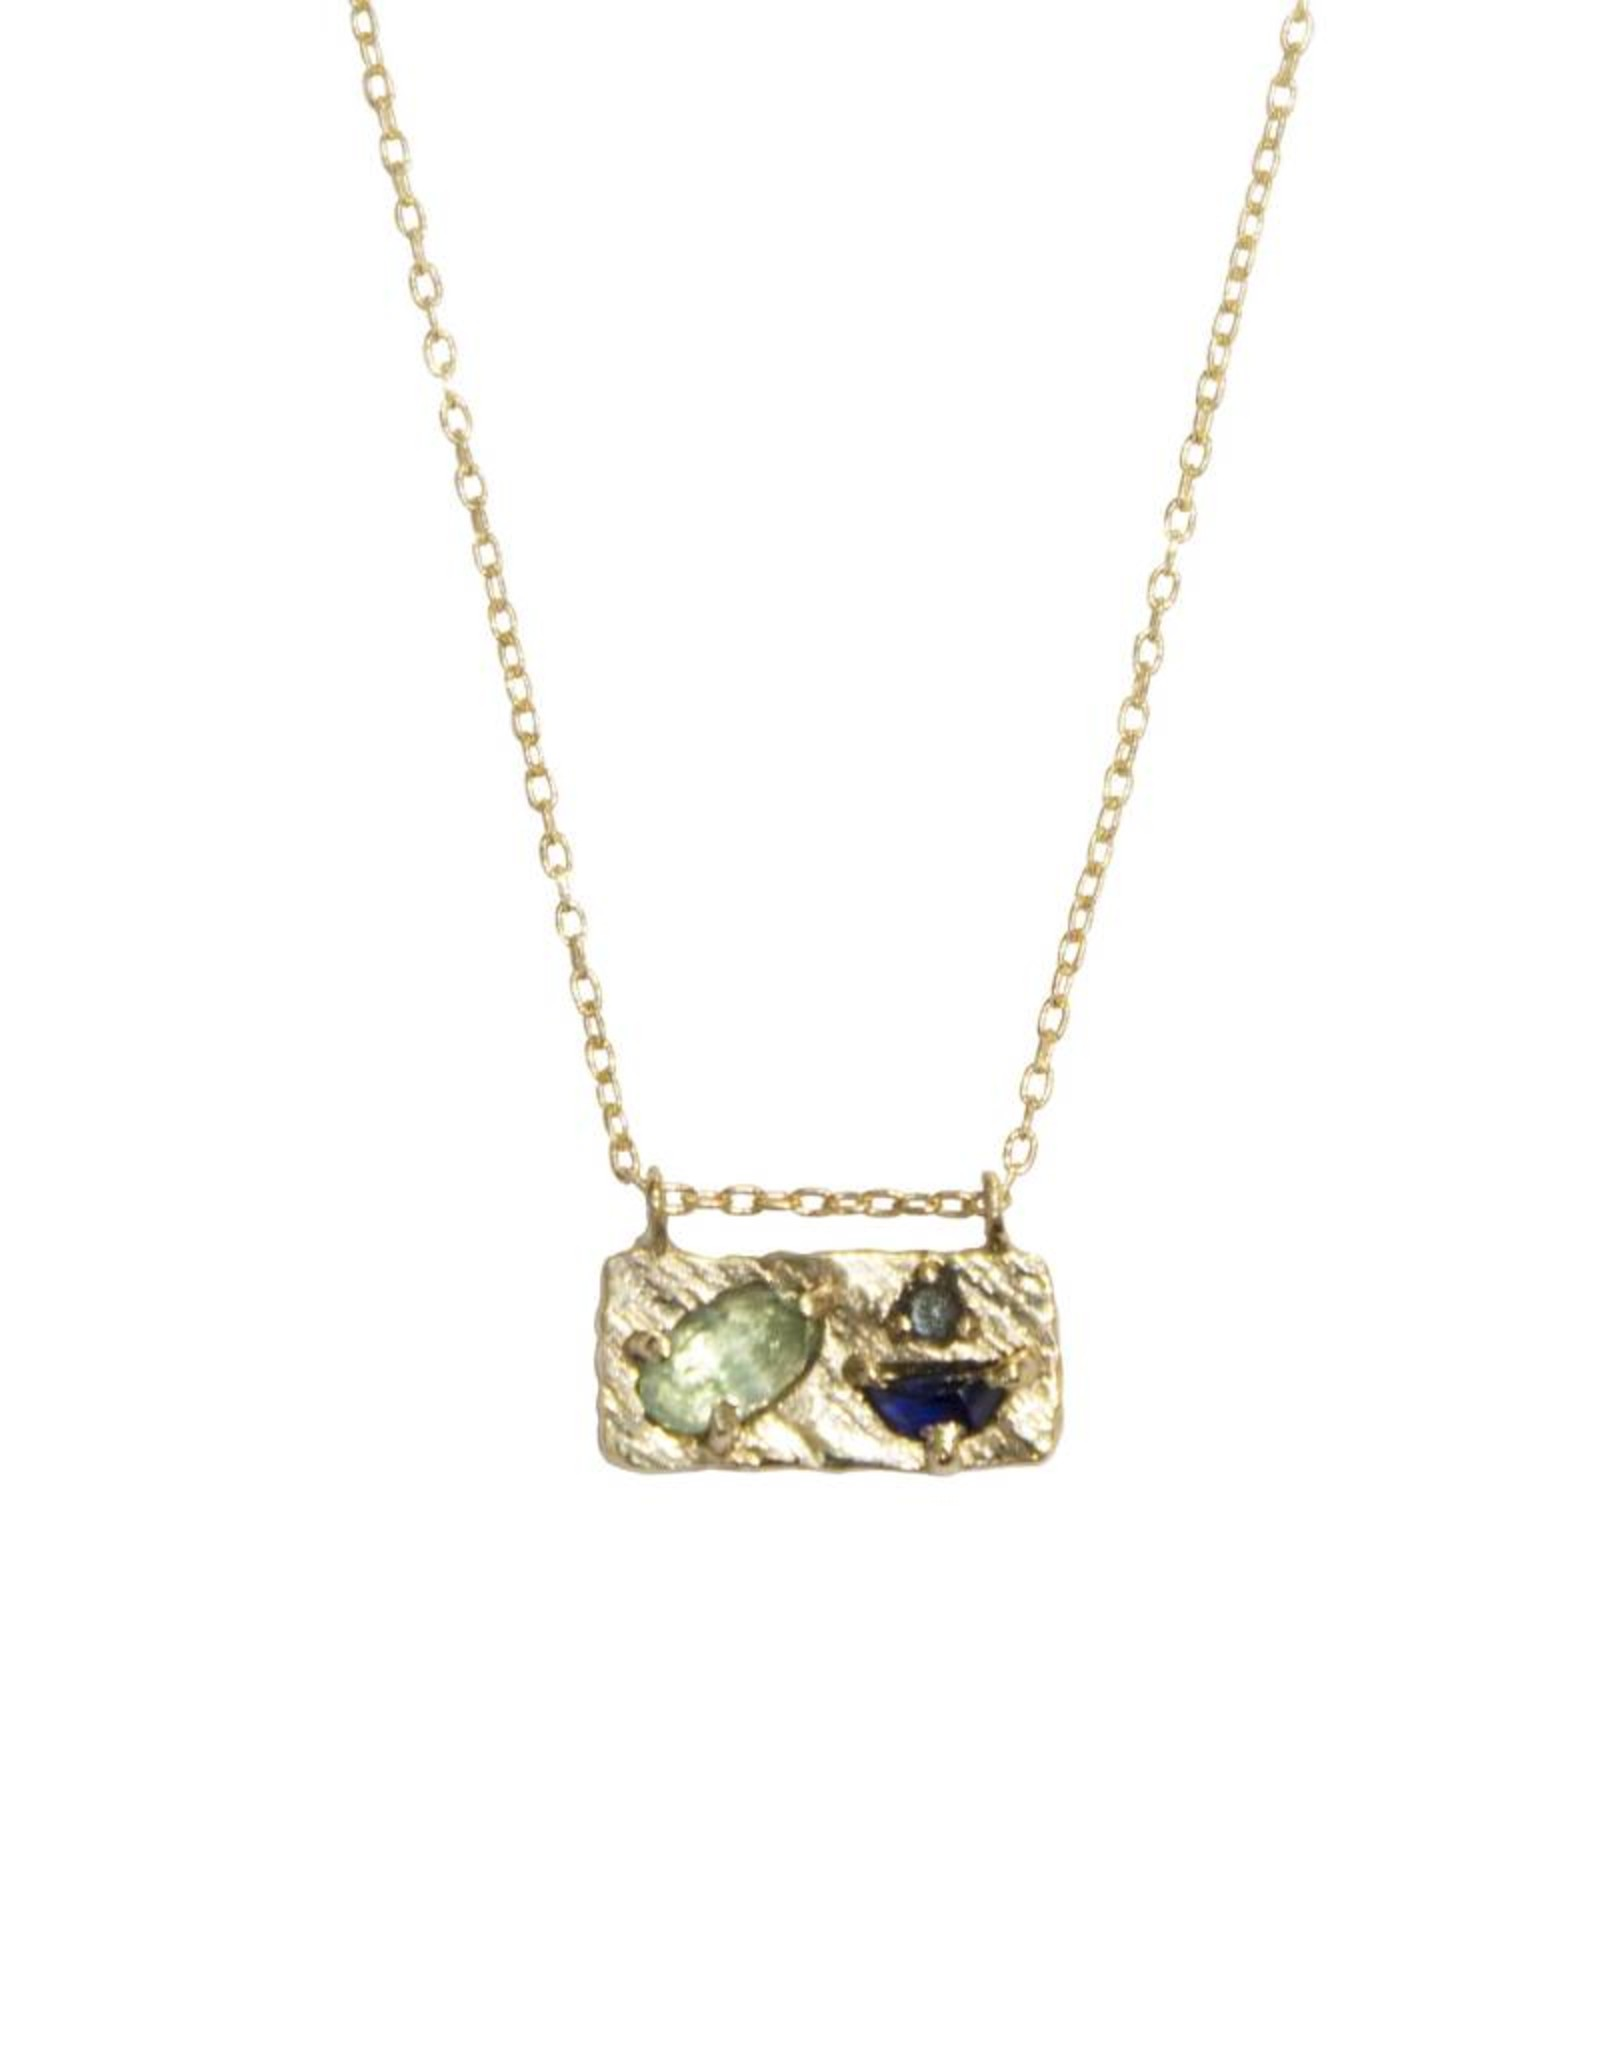 Lio & Linn Small Collage Necklace - Emerald + Blue Sapphire